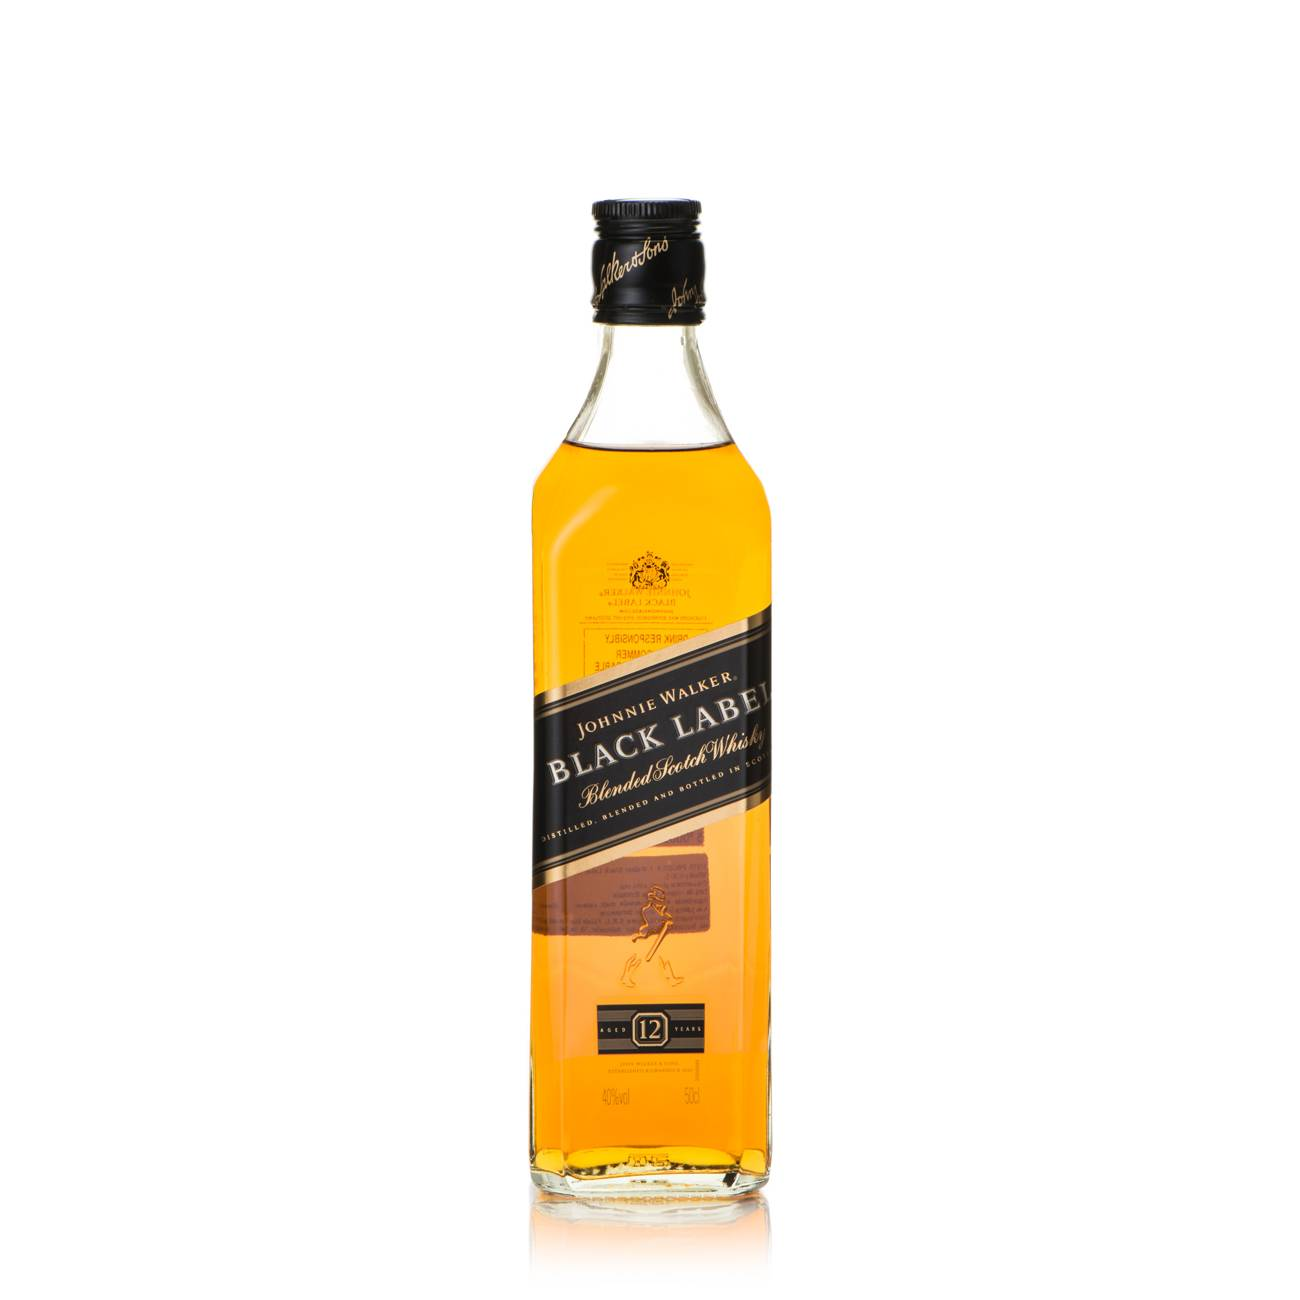 Whisky scotian, BLACK LABEL 500 Ml, Johnnie Walker